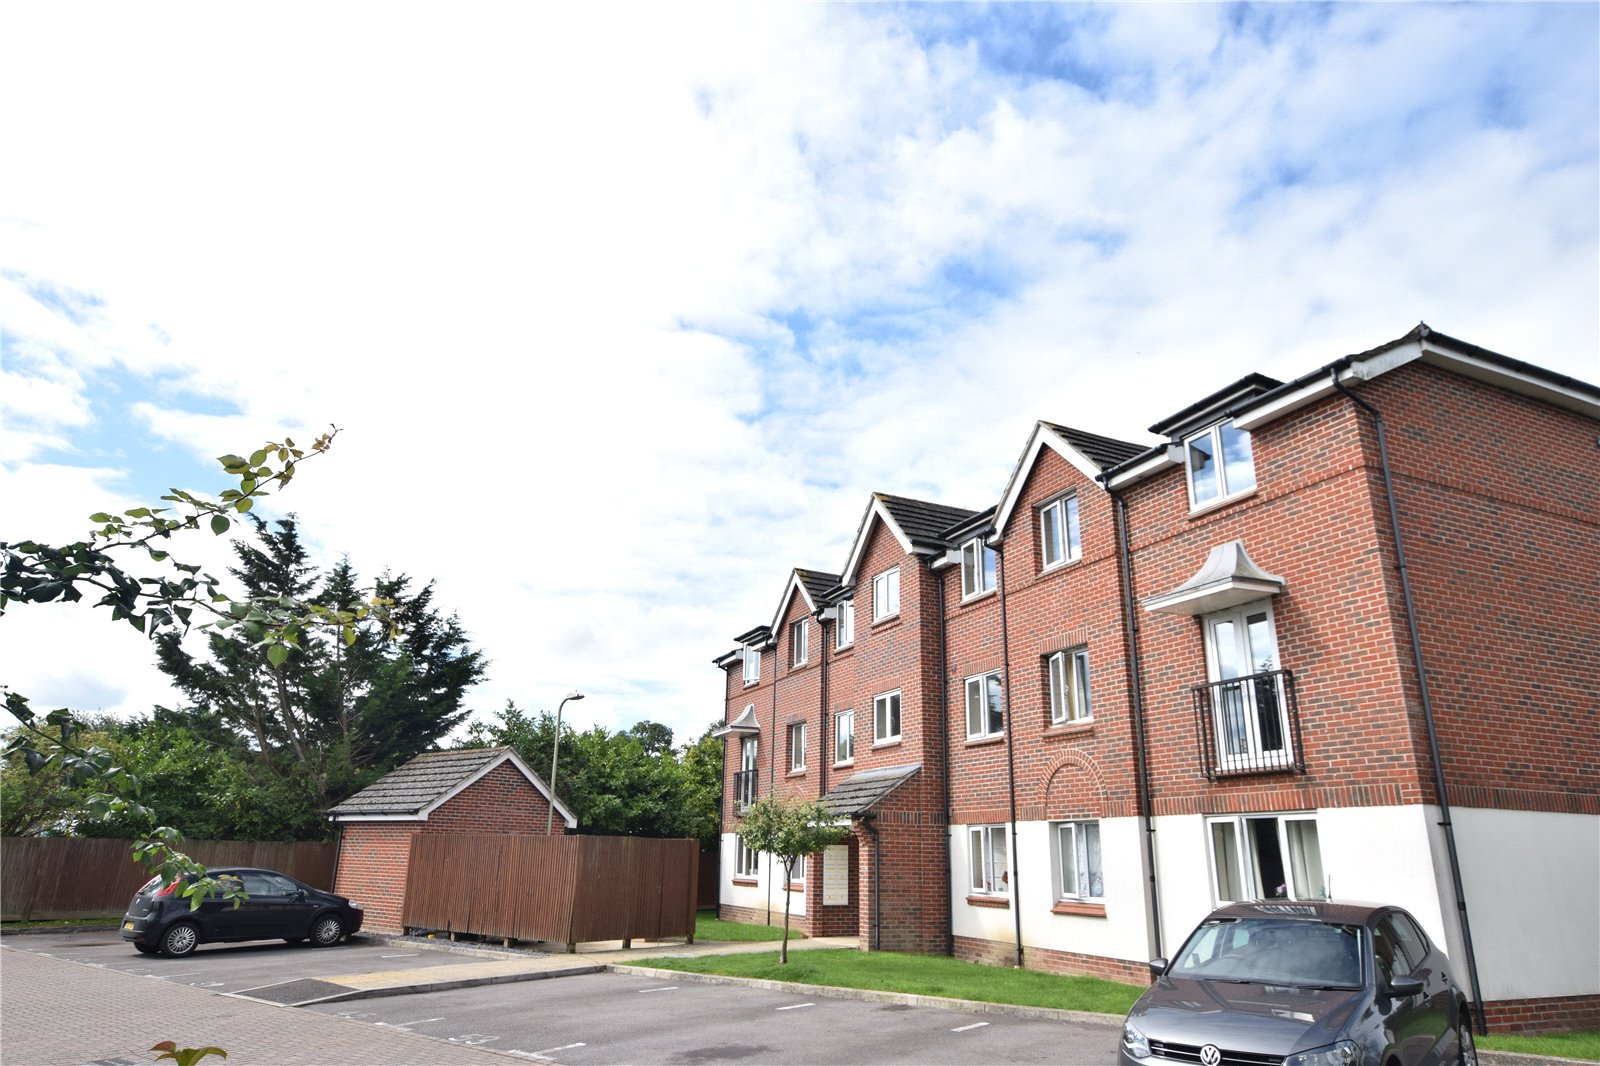 2 Bedrooms Apartment Flat for sale in Benham Drive, Spencers Wood, Reading, Berkshire, RG7